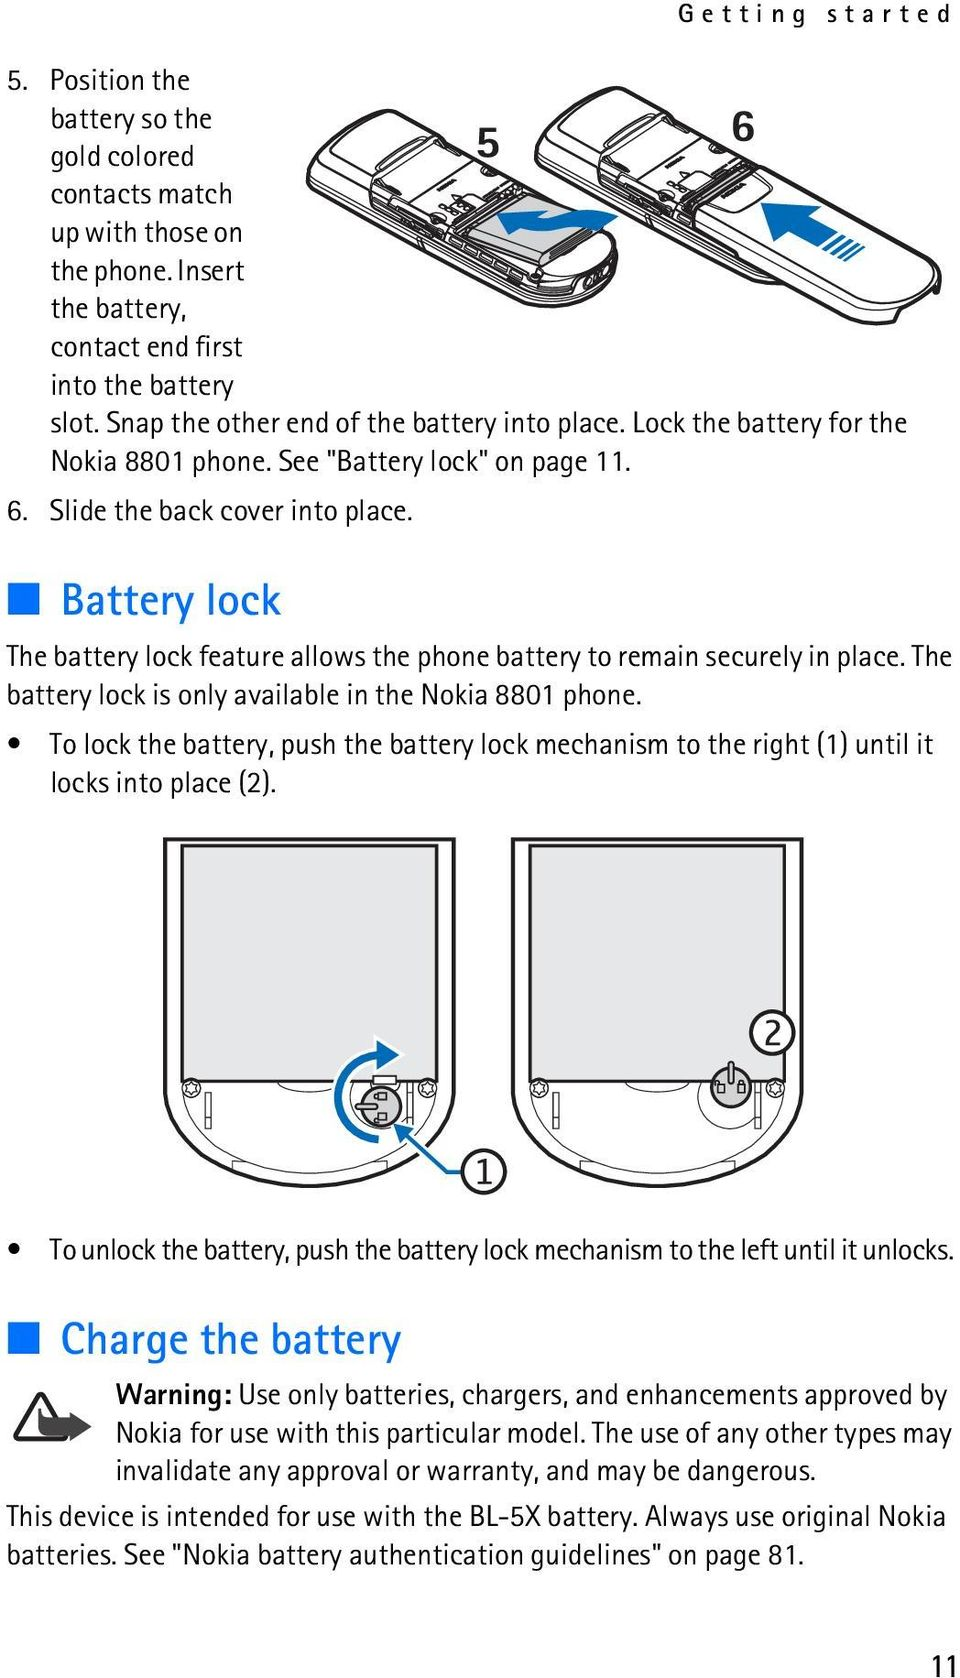 Battery lock The battery lock feature allows the phone battery to remain securely in place. The battery lock is only available in the Nokia 8801 phone.